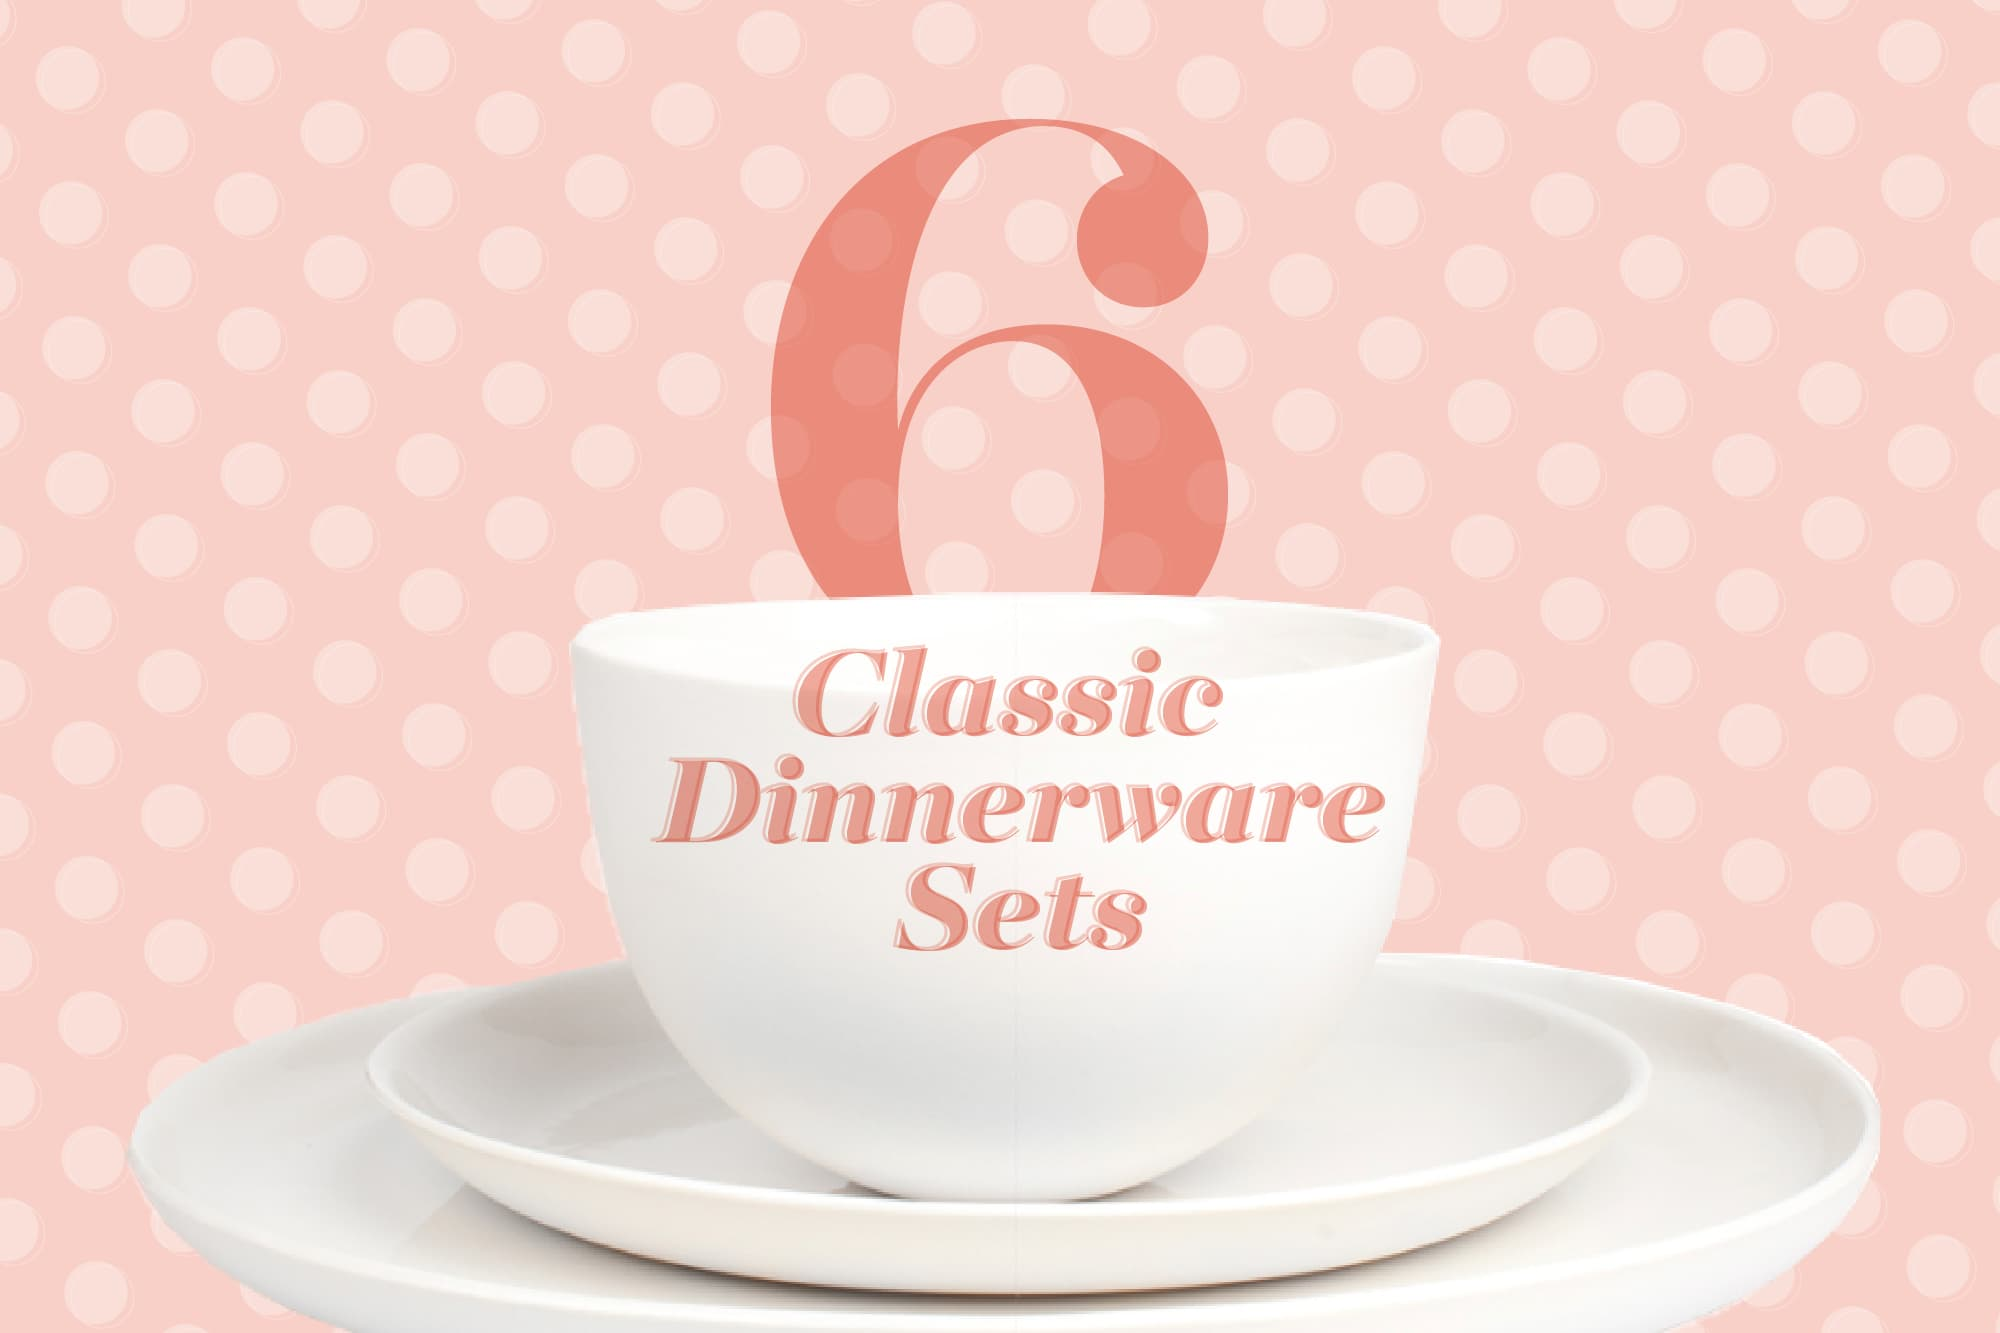 6 Dinnerware Sets That Will Outlast Your Design Whims: gallery image 1